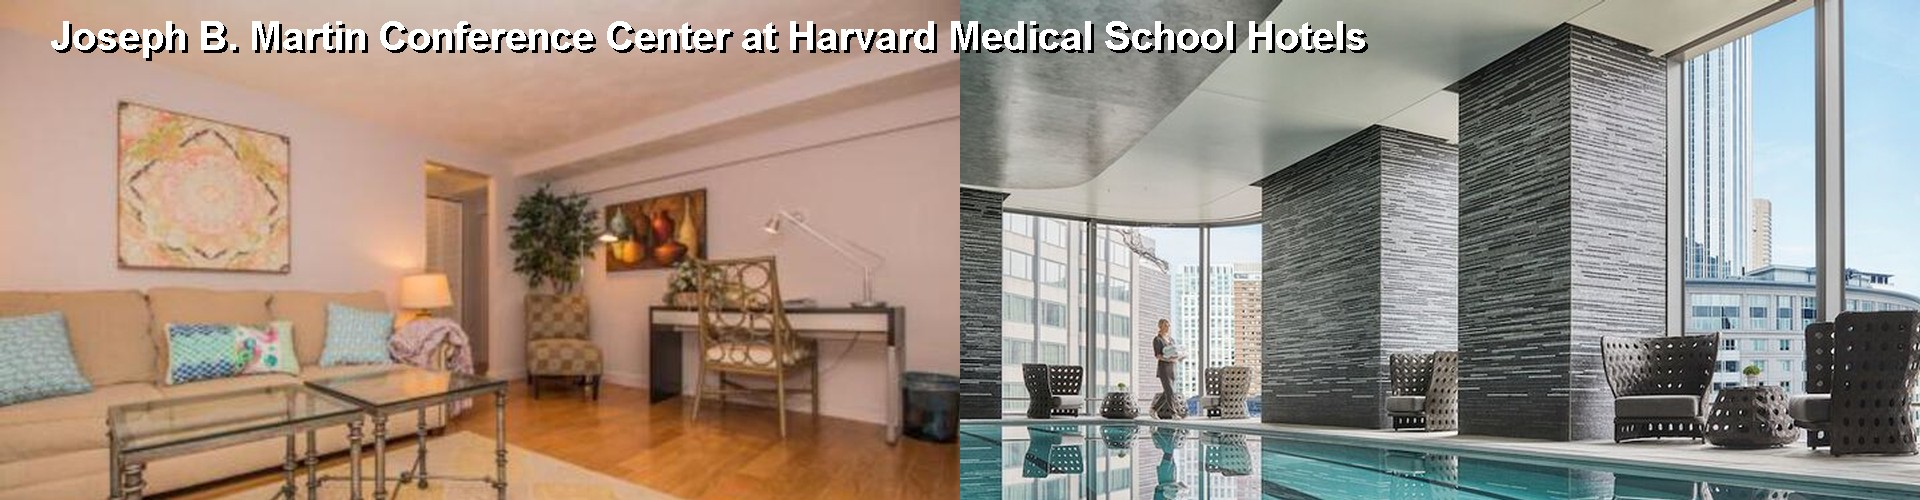 5 Best Hotels near Joseph B. Martin Conference Center at Harvard Medical School